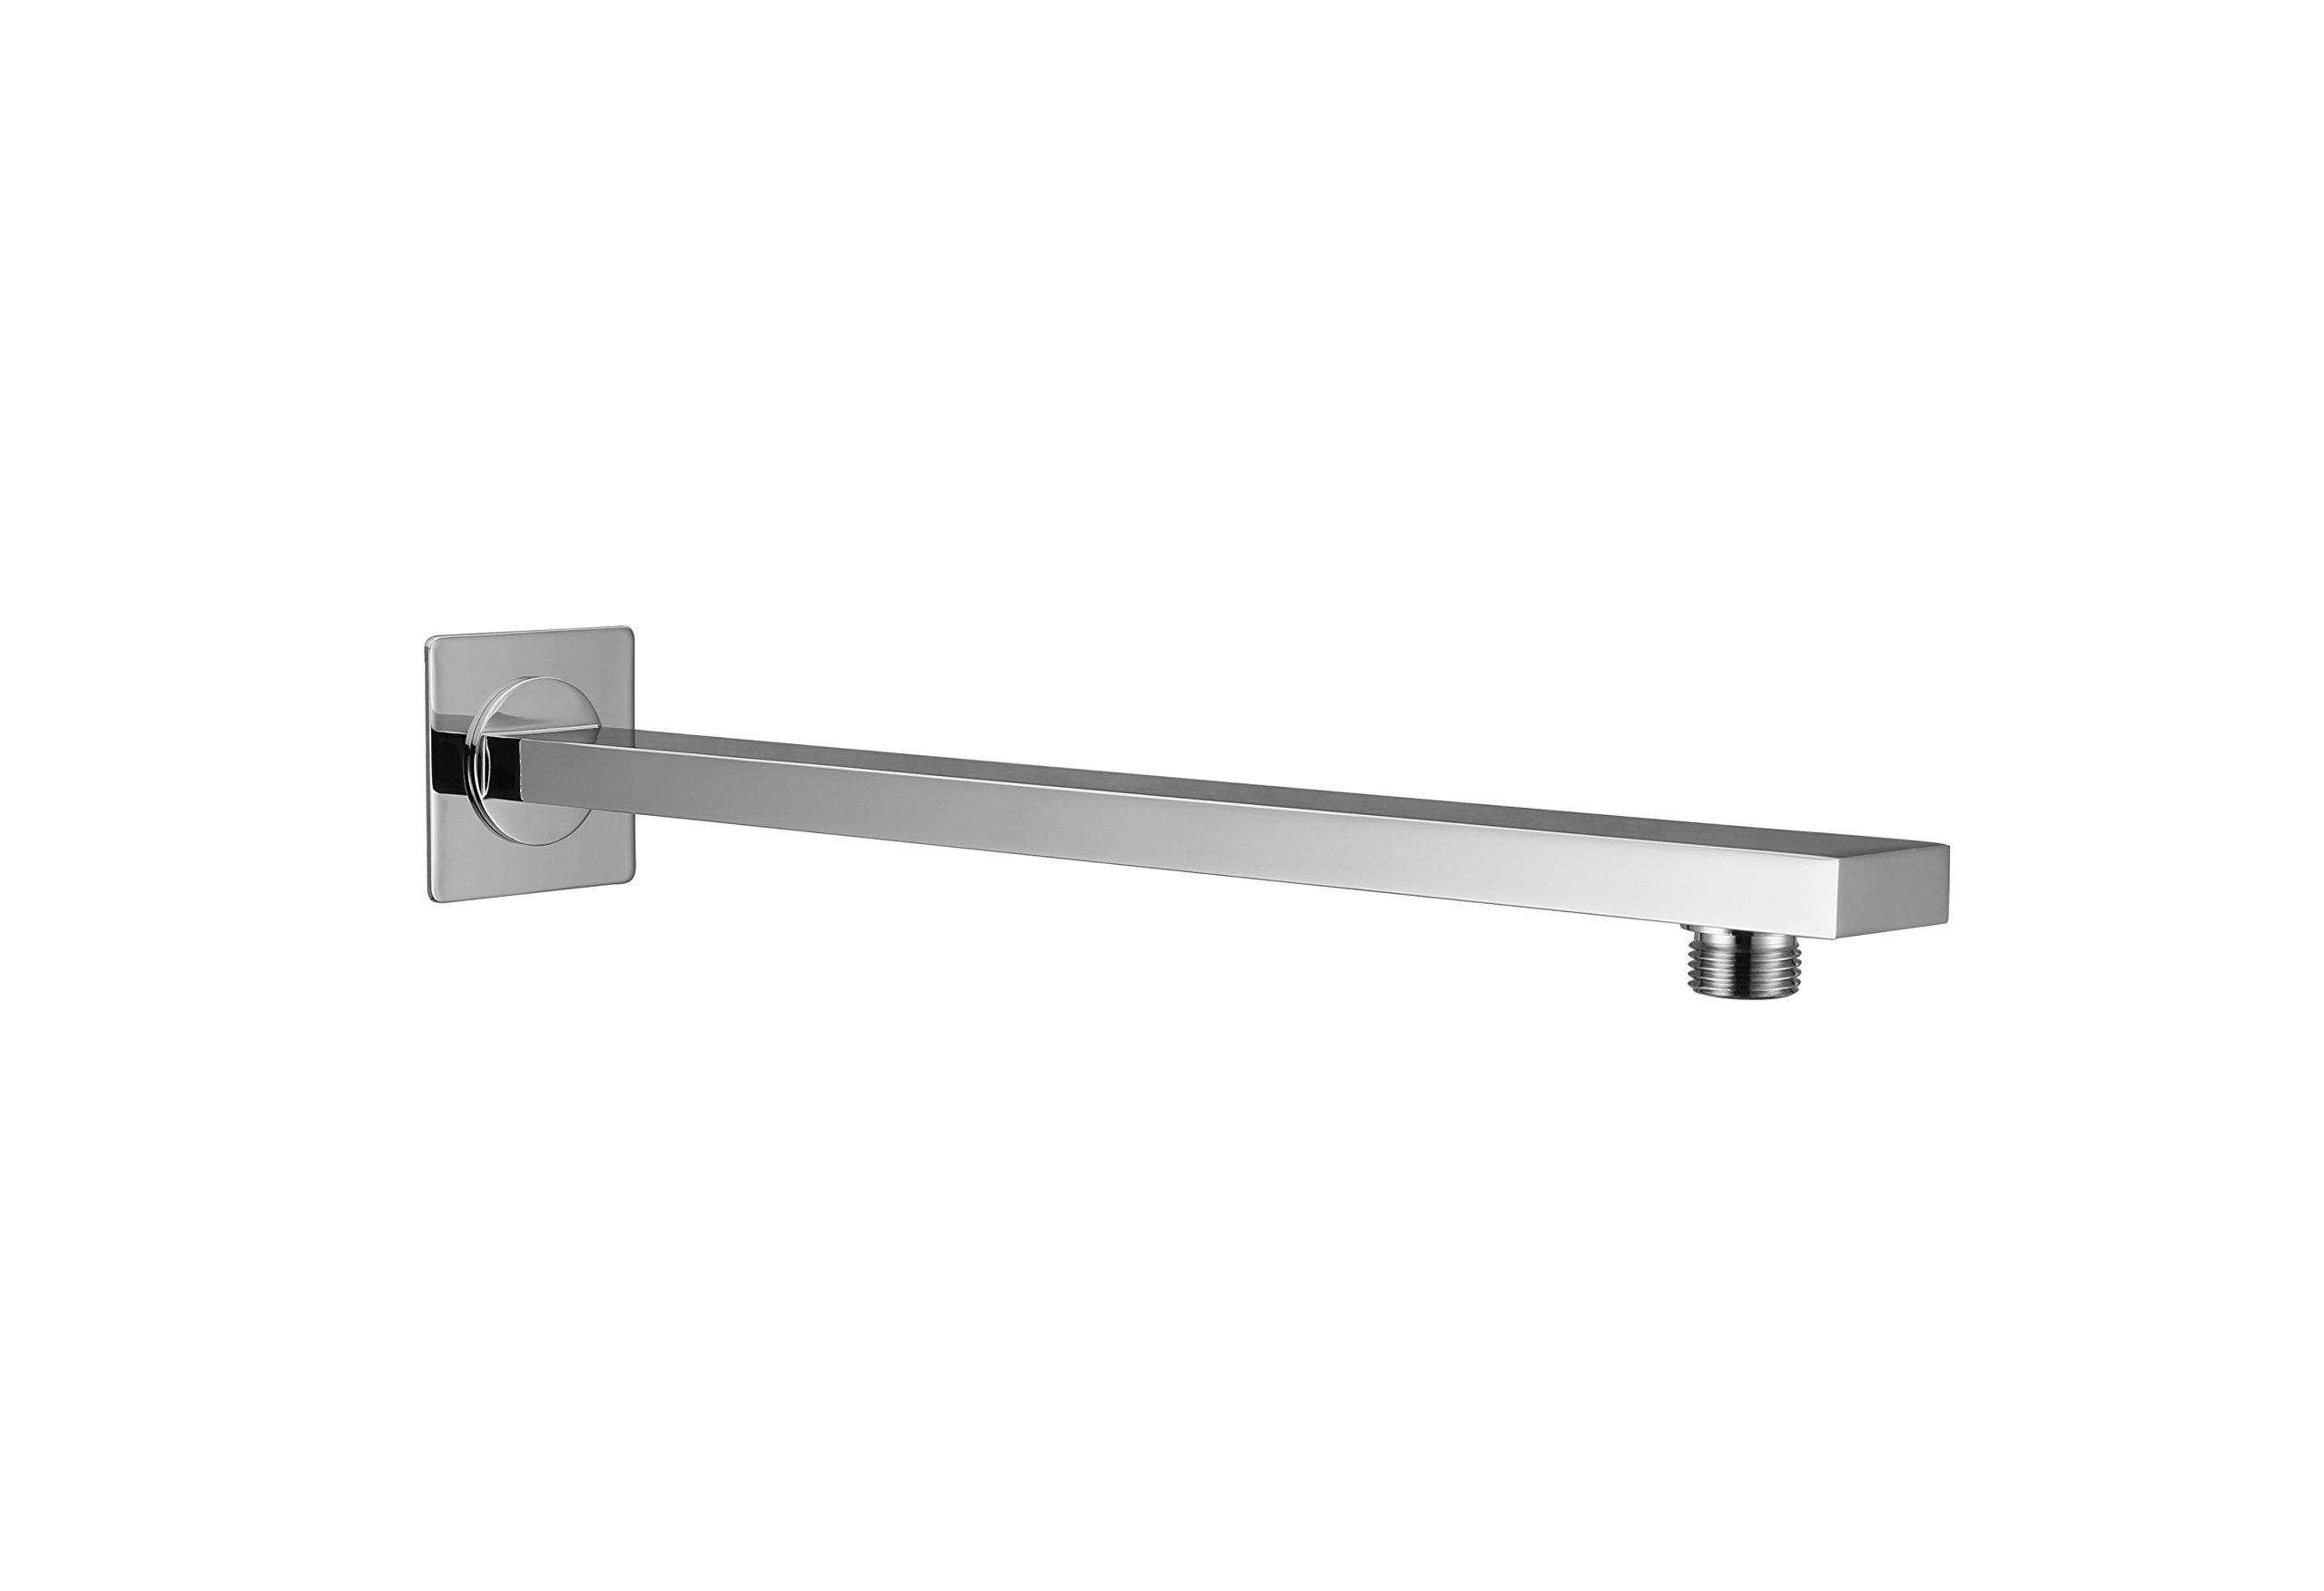 Kelica Stainless Steel Bathroom Square Shower Arm With Flange 17-inch, Polished Chrome